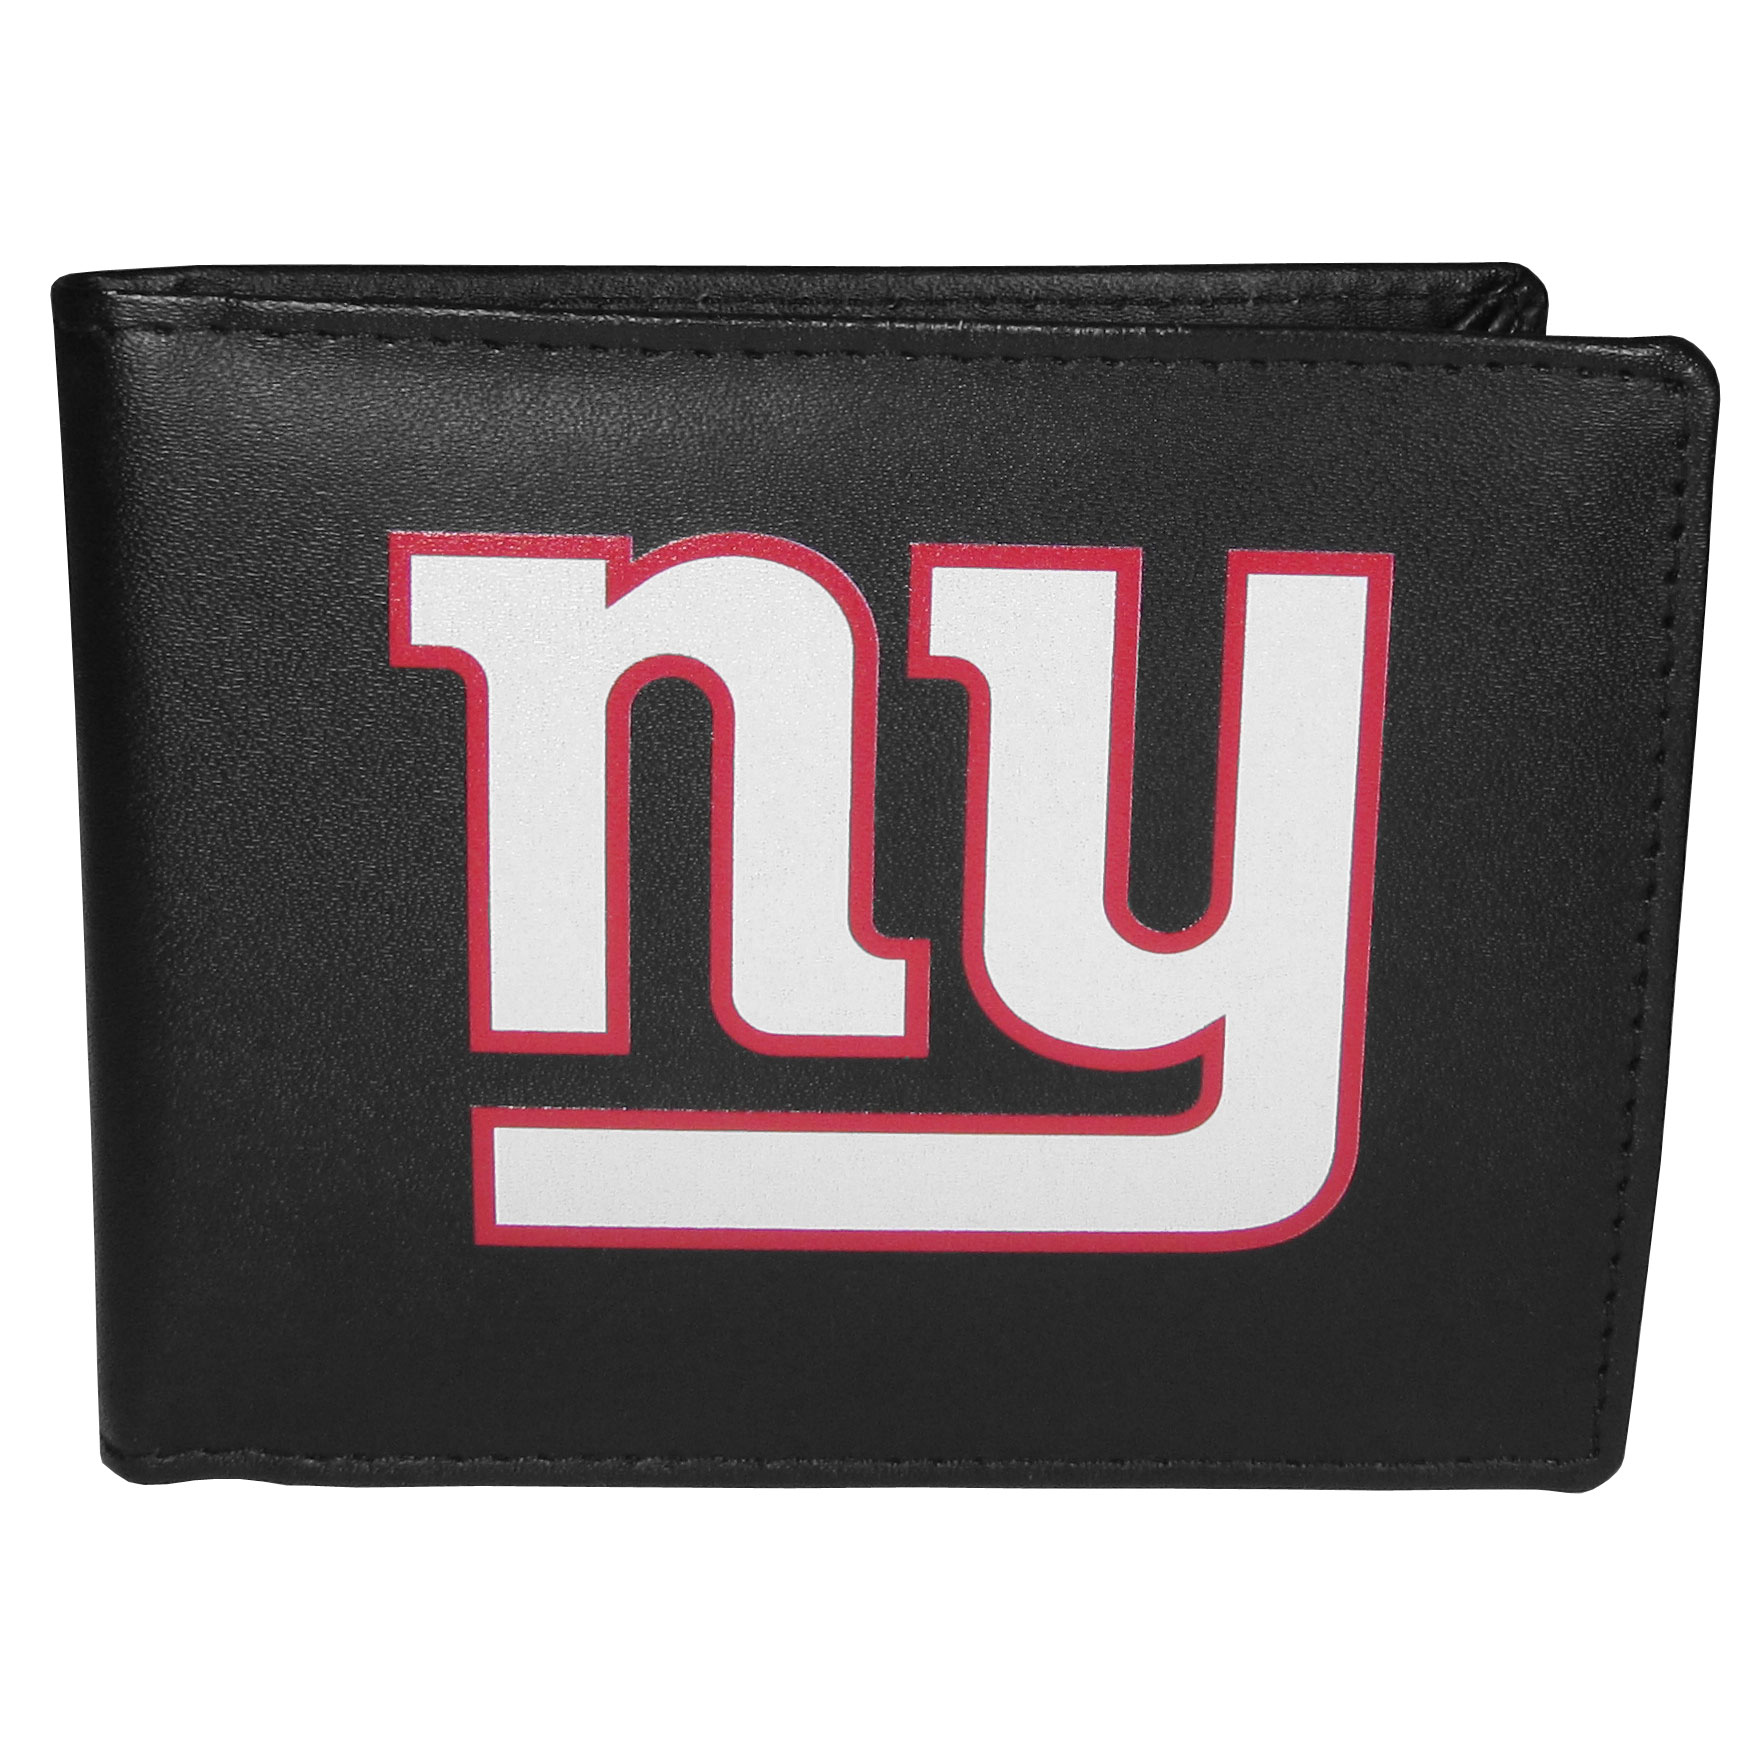 New York Giants Bi-fold Wallet Large Logo - Sports fans do not have to sacrifice style with this classic bi-fold wallet that sports the New York Giants extra large logo. This men's fashion accessory has a leather grain look and expert craftmanship for a quality wallet at a great price. The wallet features inner credit card slots, windowed ID slot and a large billfold pocket. The front of the wallet features a printed team logo.